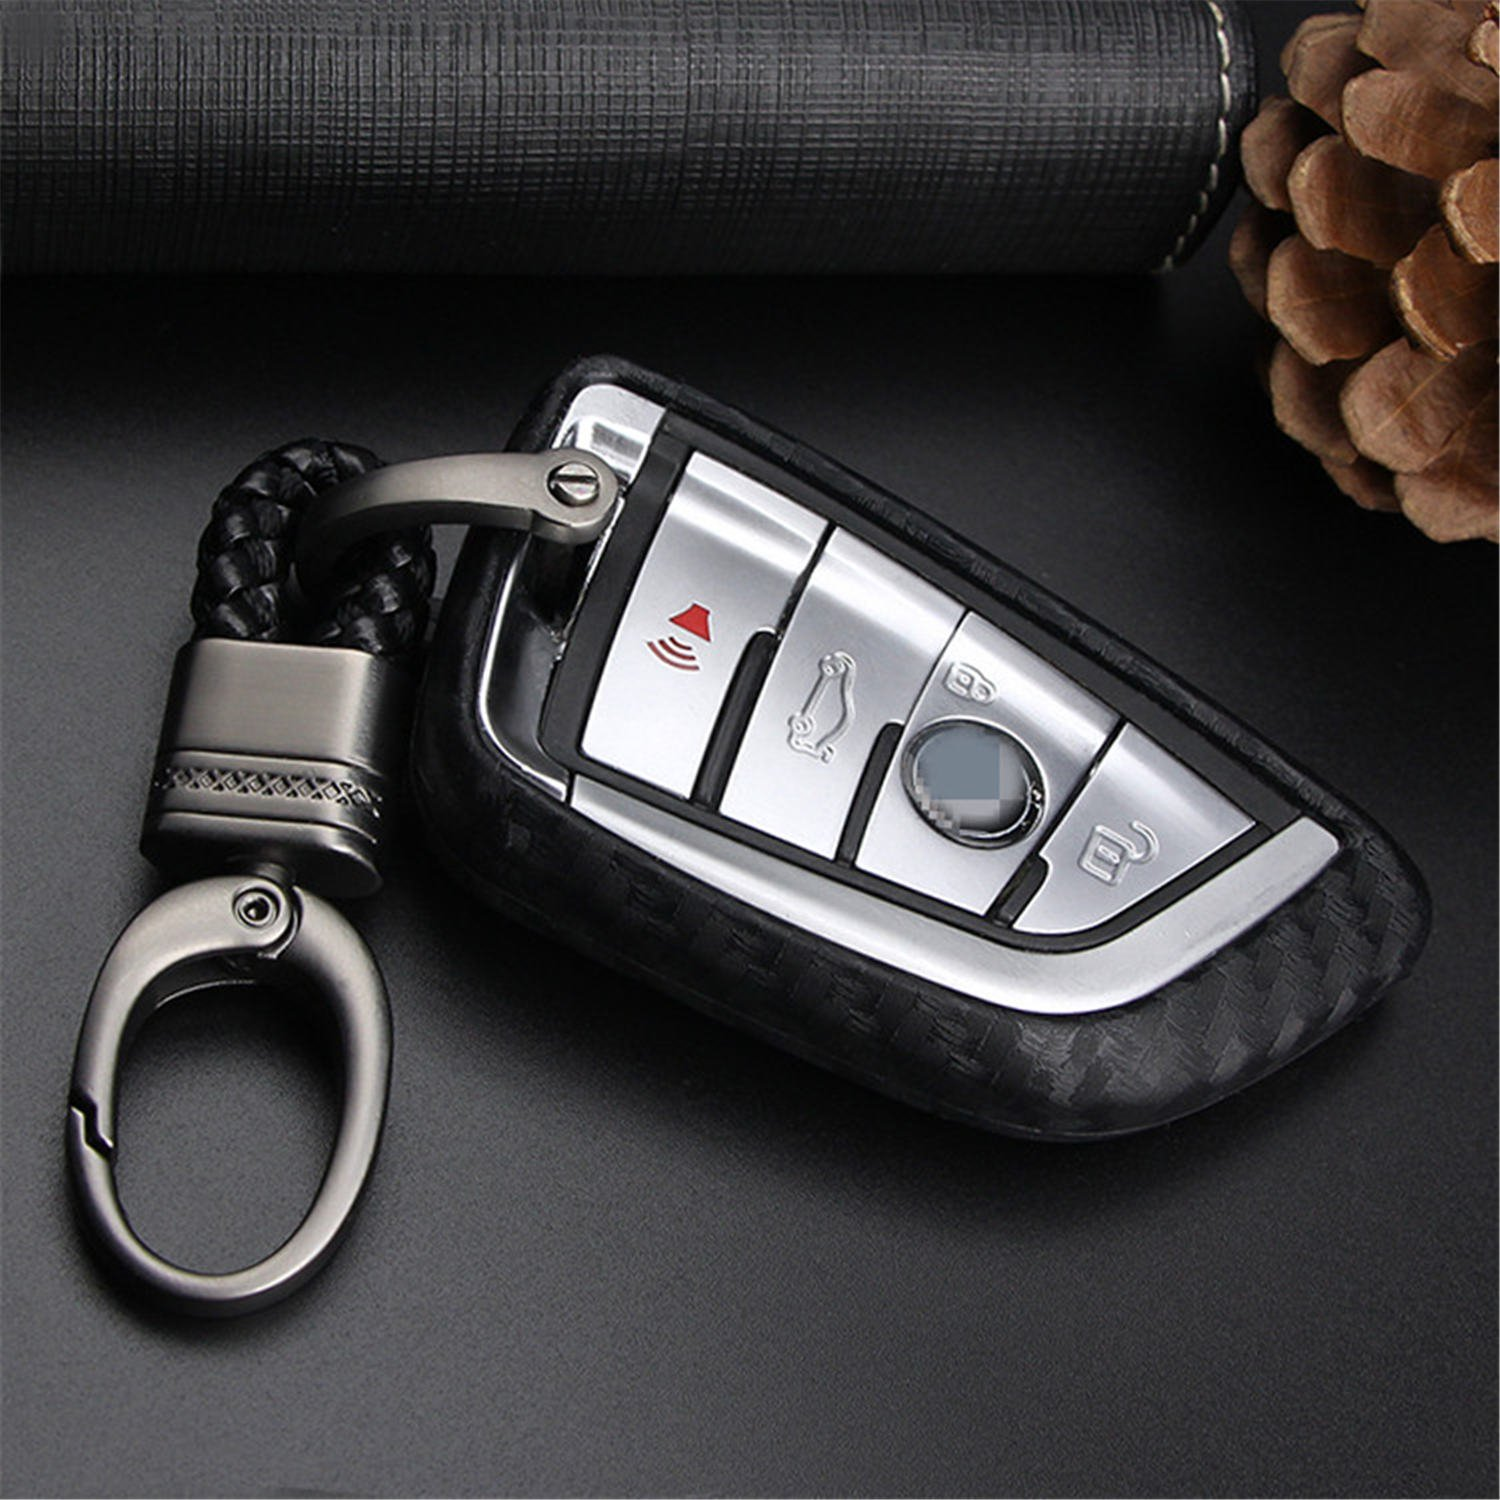 Round Keychain Car Keyless Entry Remote Key Fob Case For BMW X1 X 5 X5M X6 X 6M 2 7 Series Fob Remote Key M.JVisun Soft Silicone Rubber Carbon Fiber Texture Cover Protector For BMW Key Fob Black